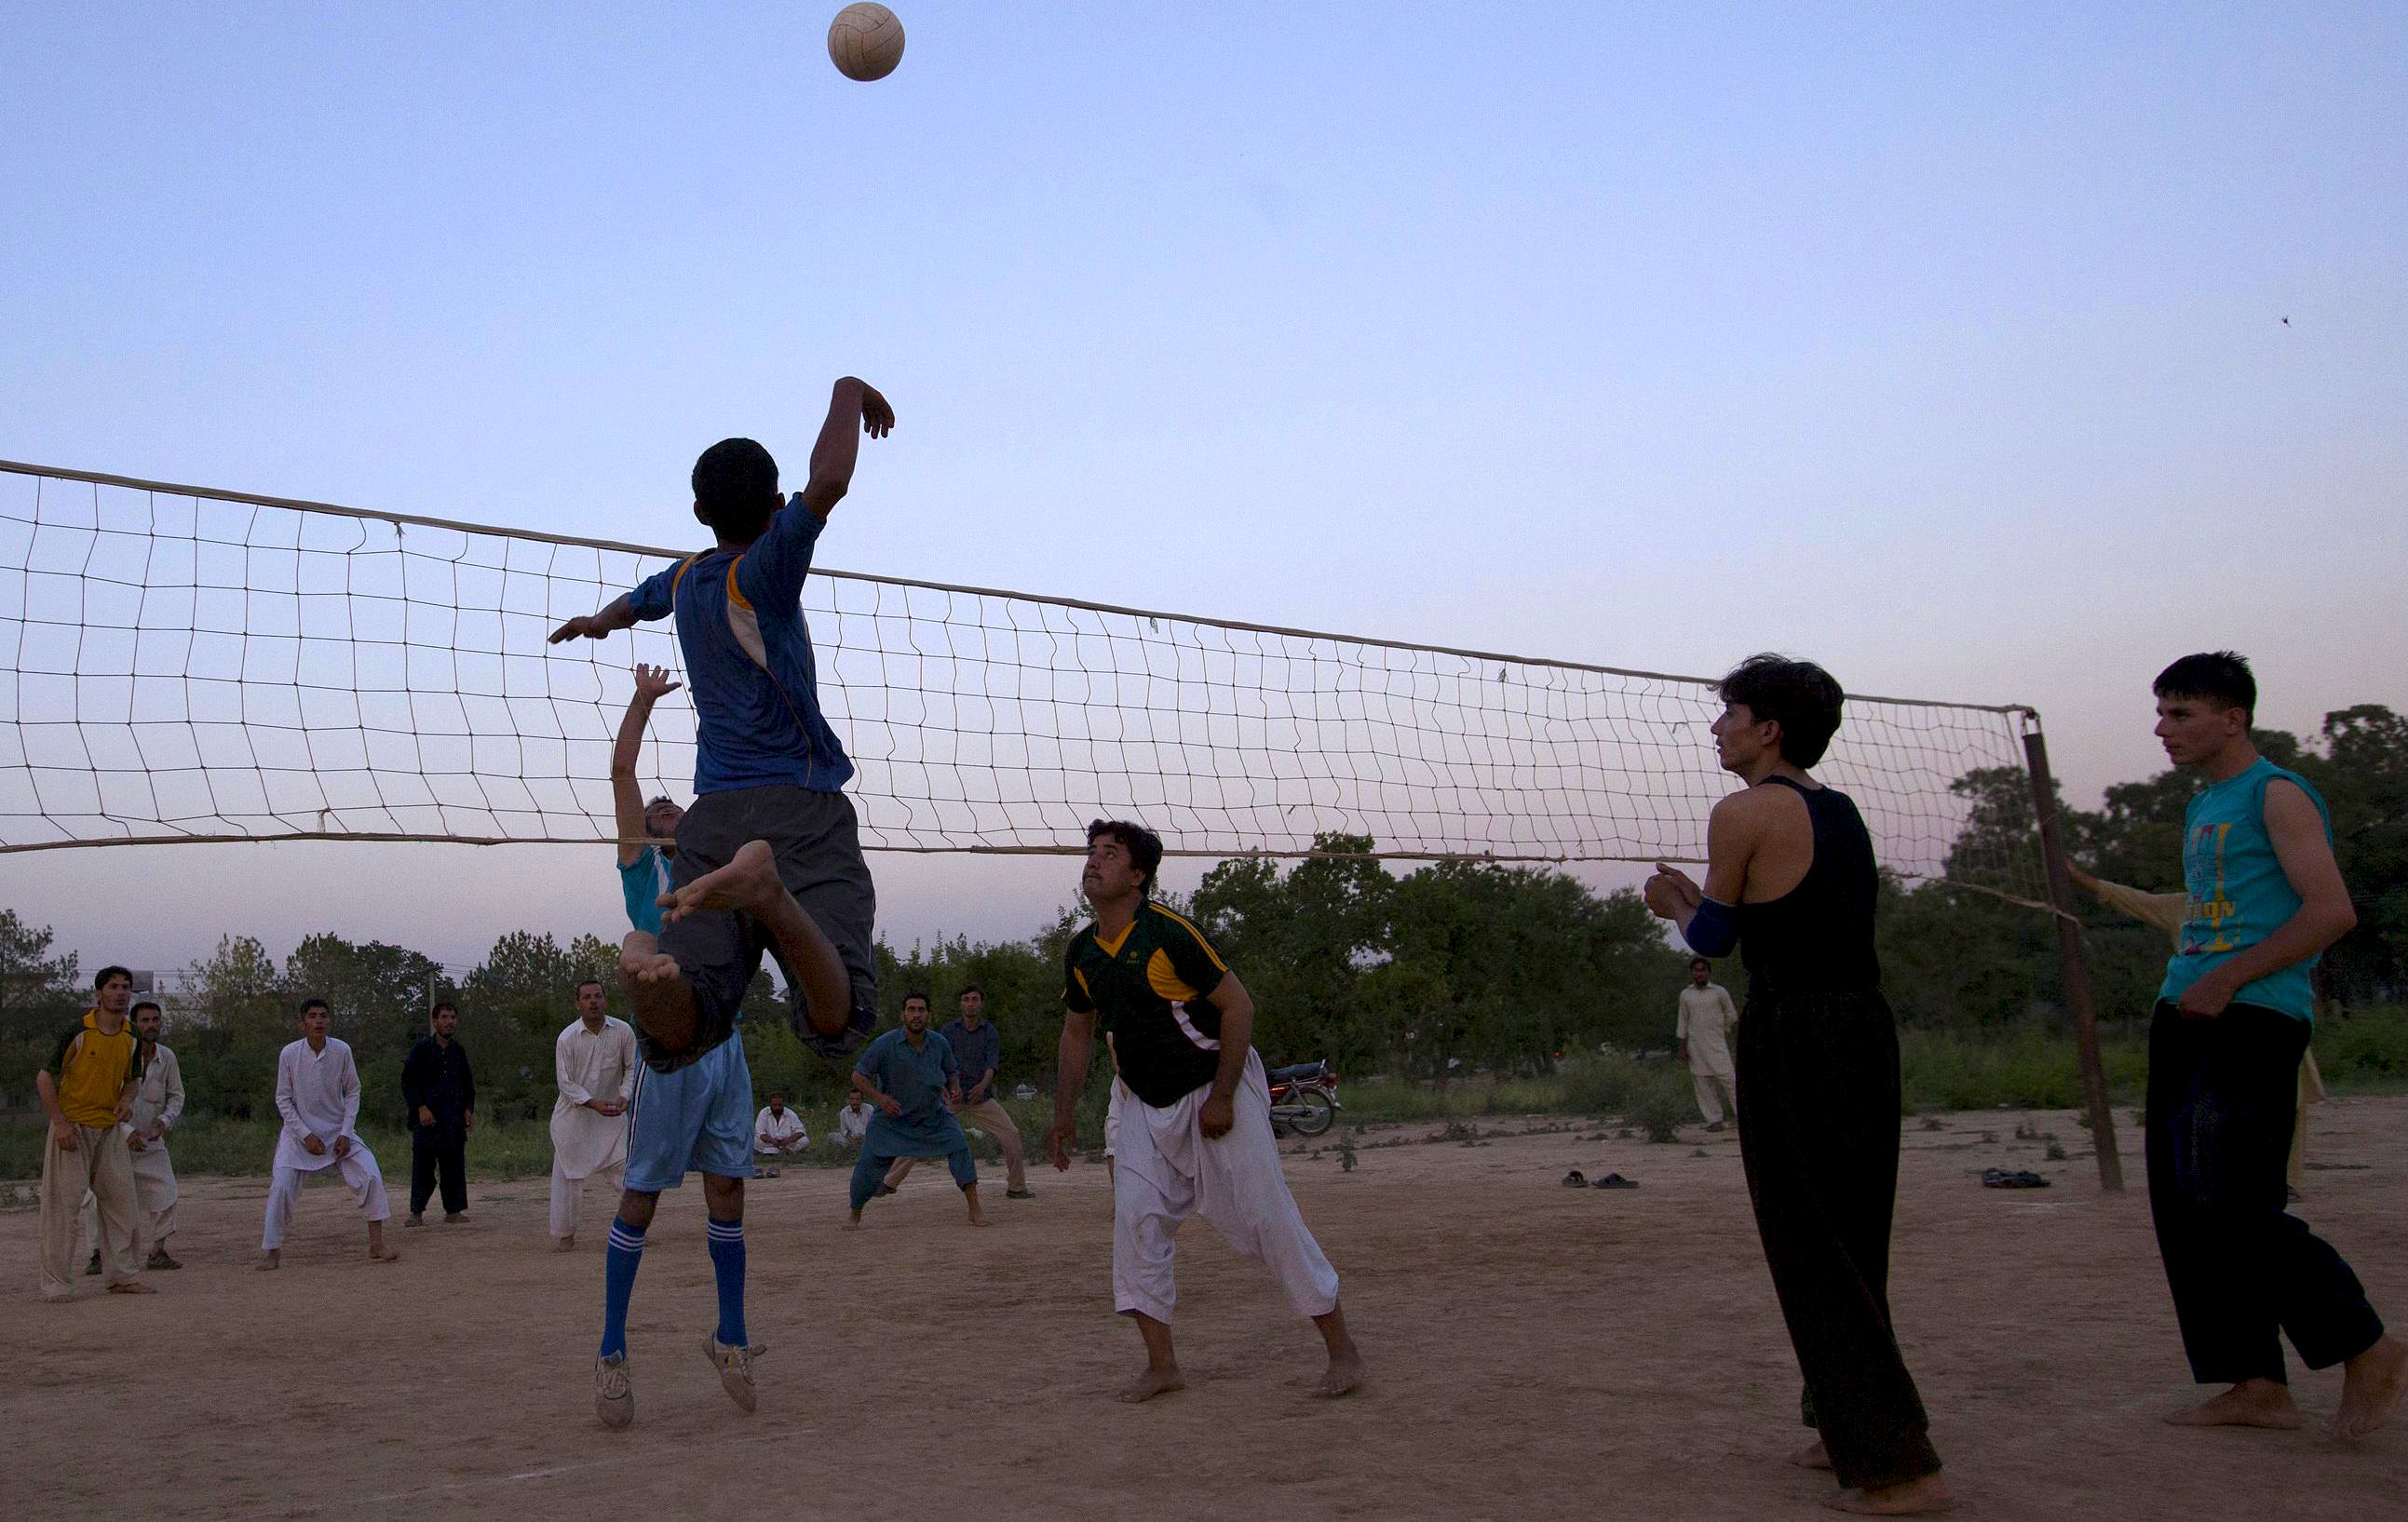 Afghan refugees play volleyball at an open field on the outskirts of Islamabad June 20, 2013. REUTERS/Mian Khursheed (PAKISTAN - Tags: SOCIETY SPORT VOLLEYBALL POLITICS) Picture Supplied by Action Images